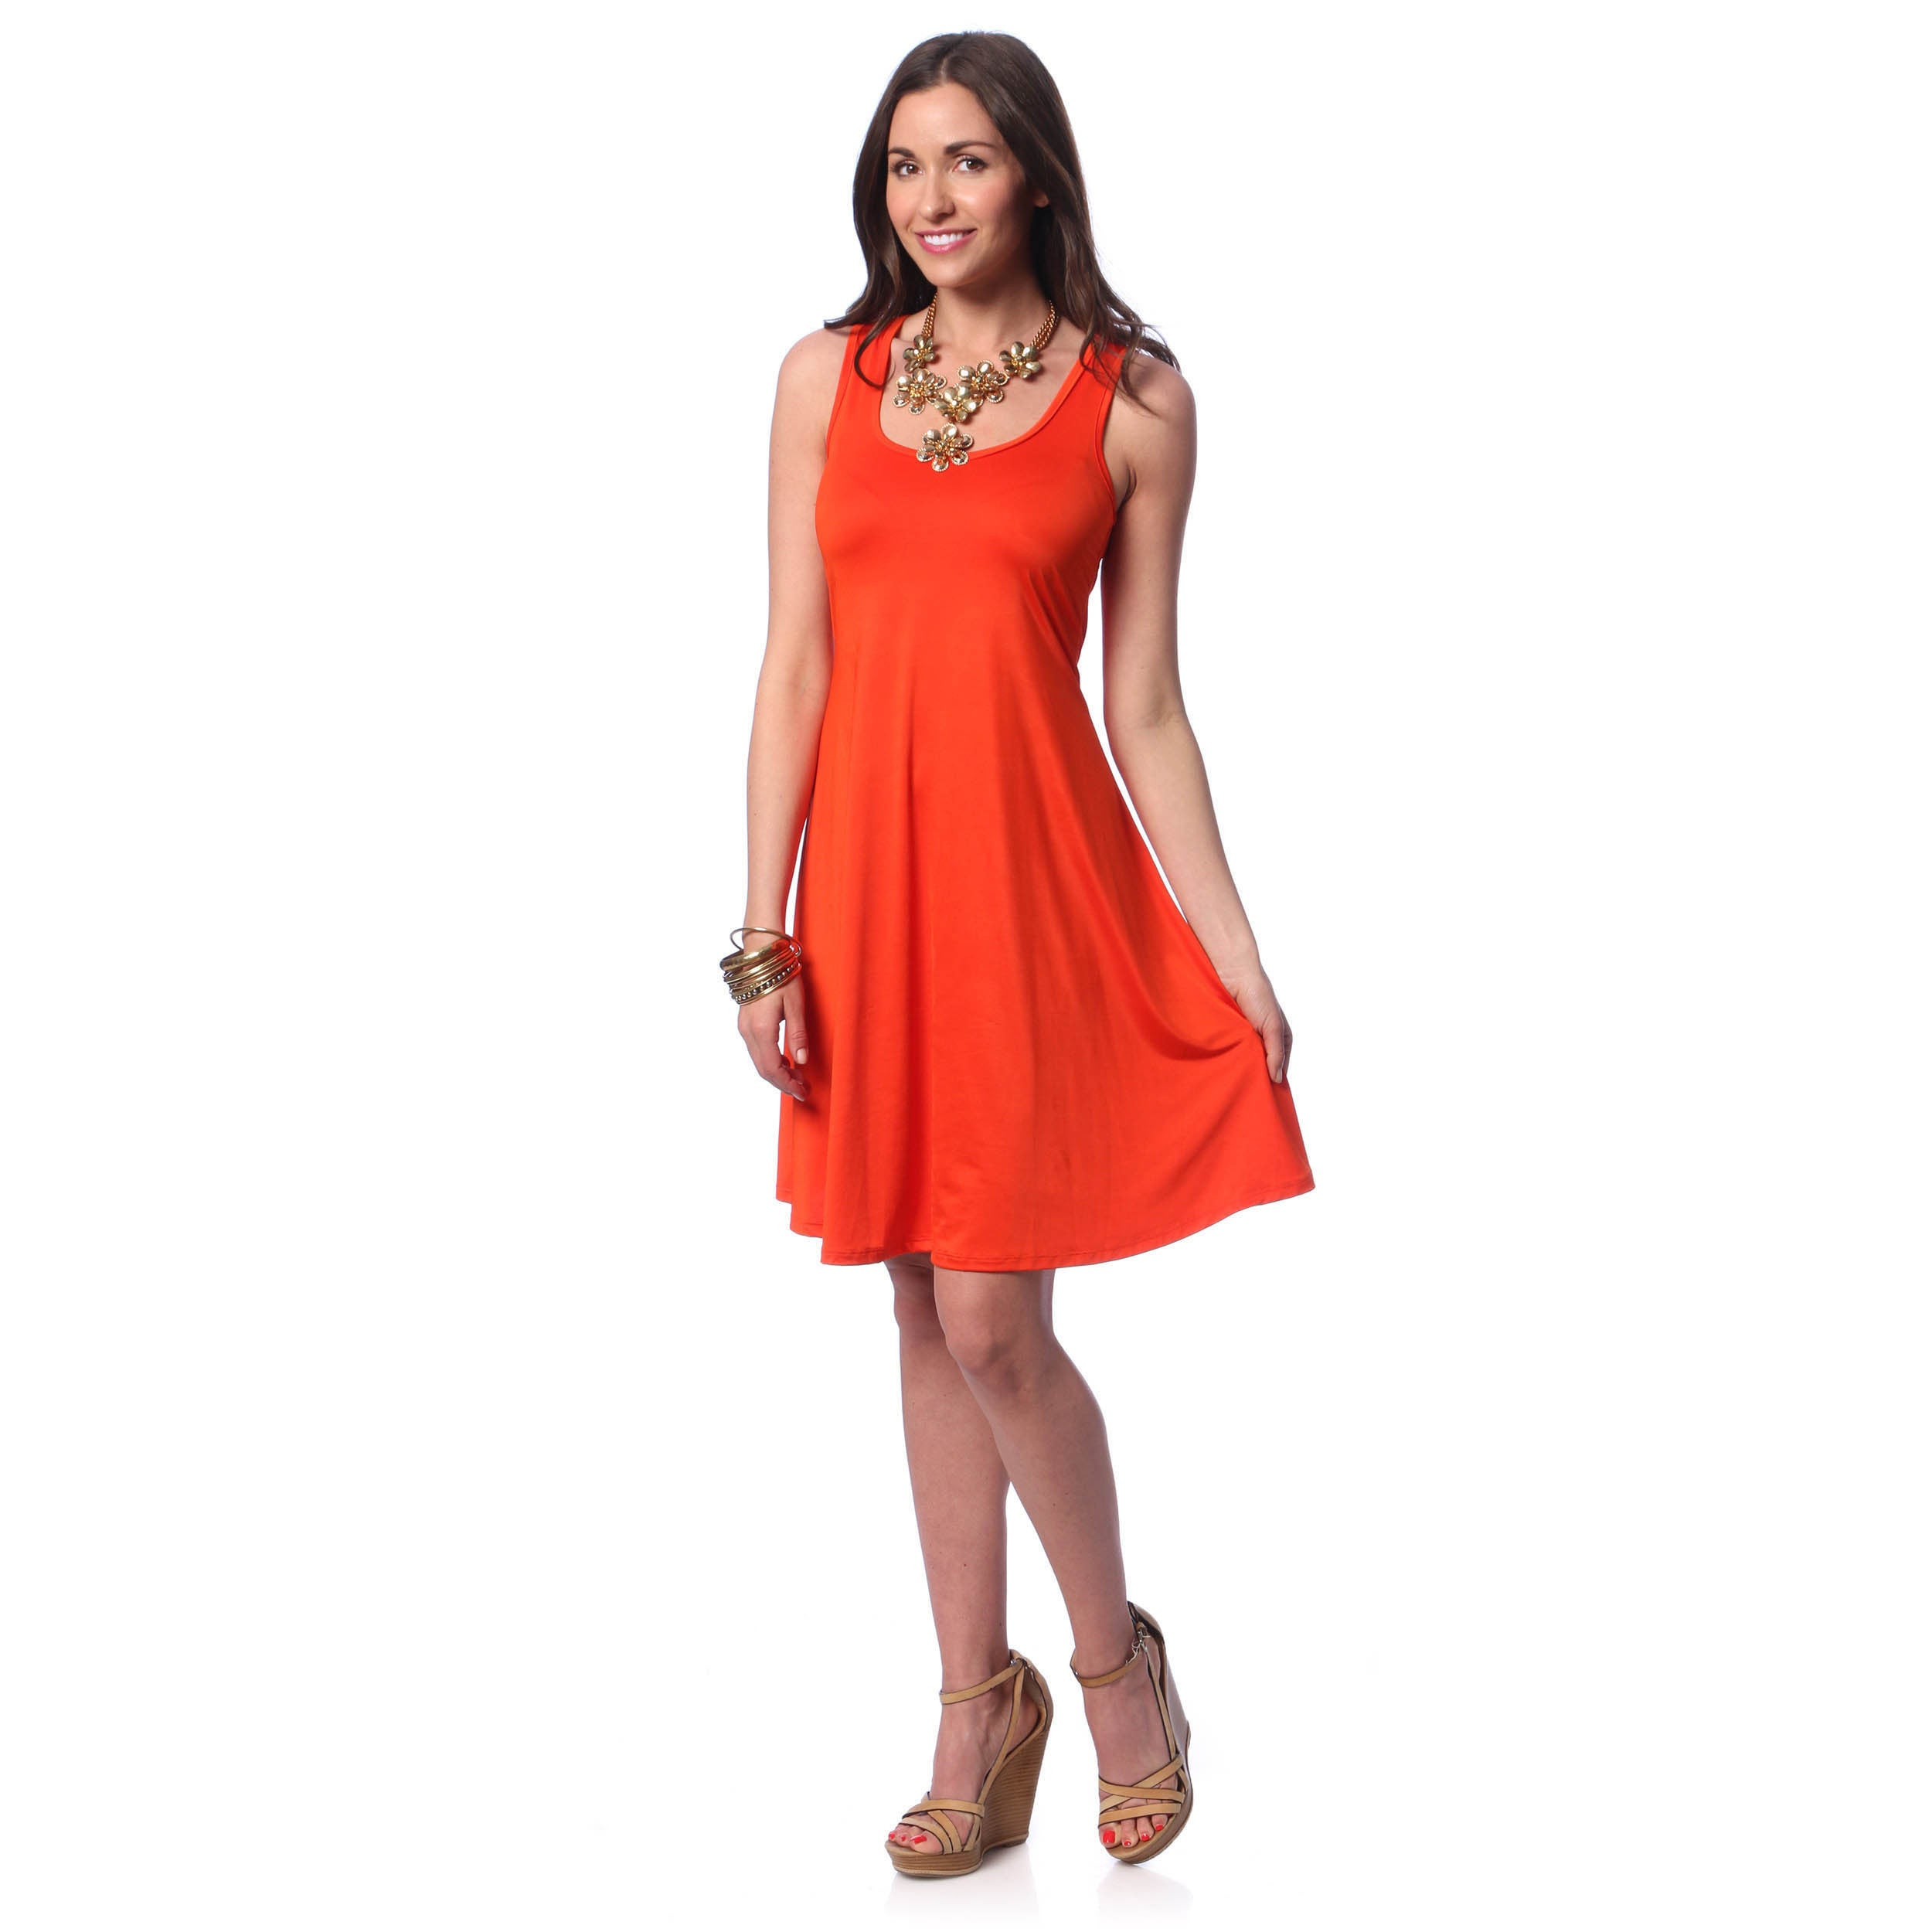 f526dc30ba3a Buy Casual Dresses Online at Overstock | Our Best Dresses Deals